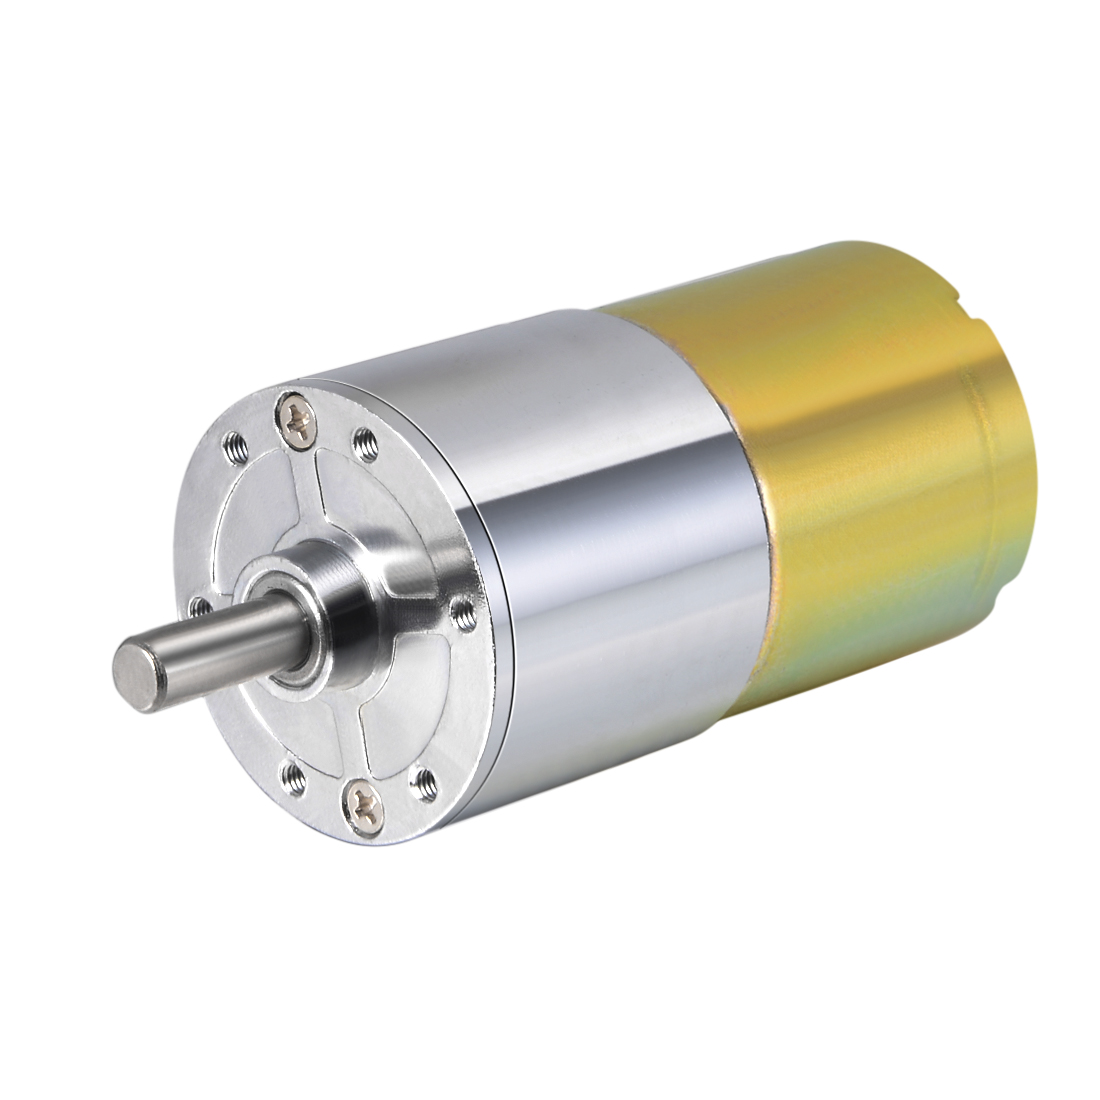 24V DC 20 RPM Gear Motor High Torque Reduction Gearbox Centric Output Shaft